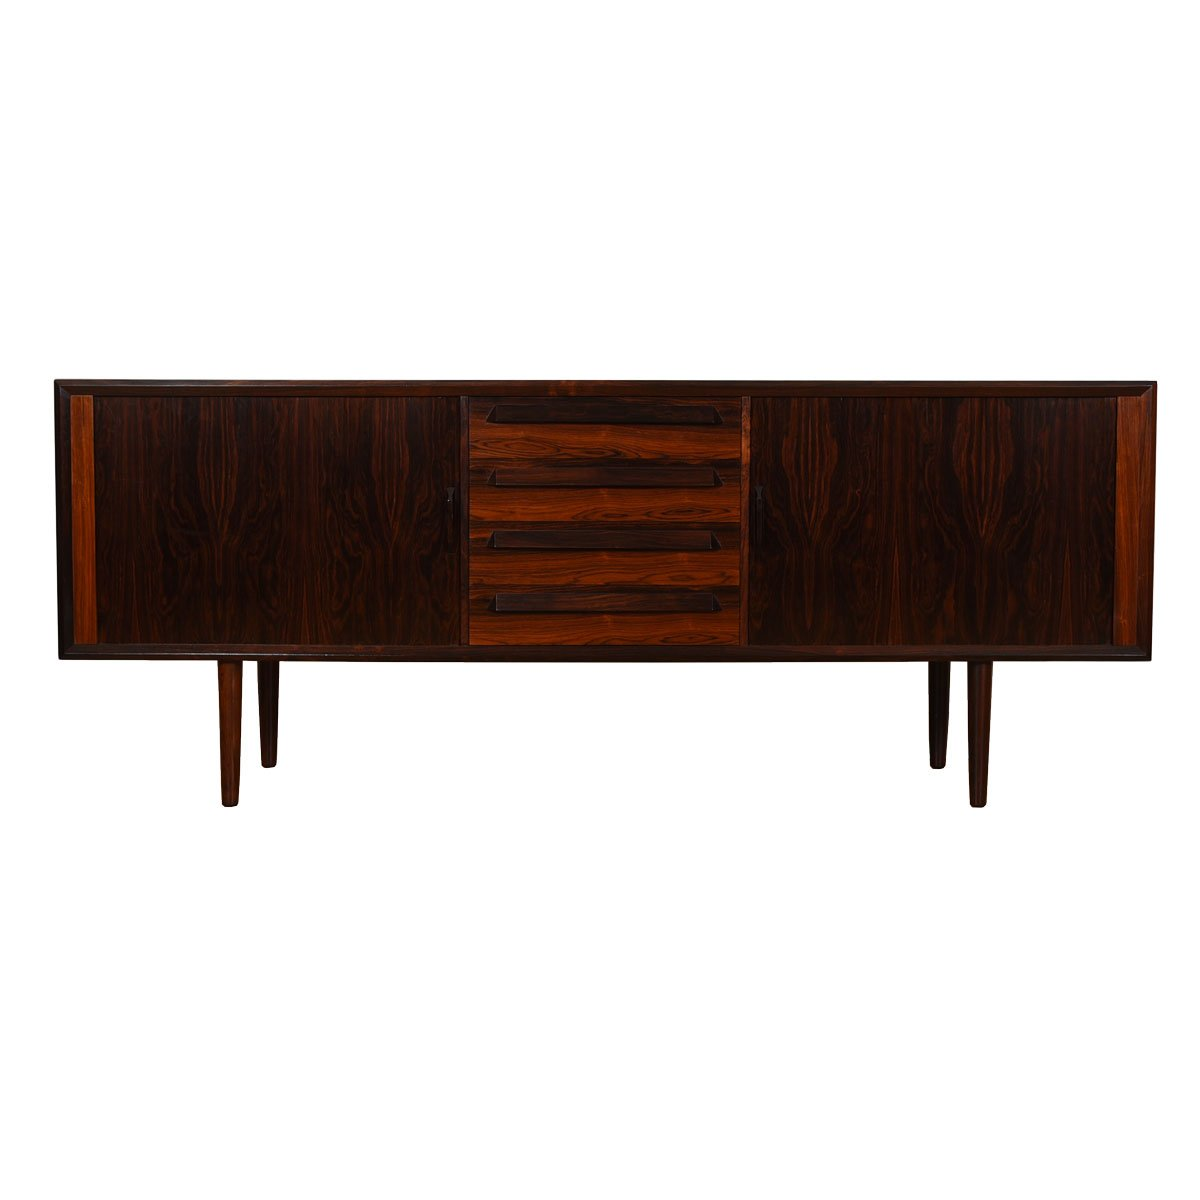 Two-Toned Danish Rosewood Tambour Door Credenza